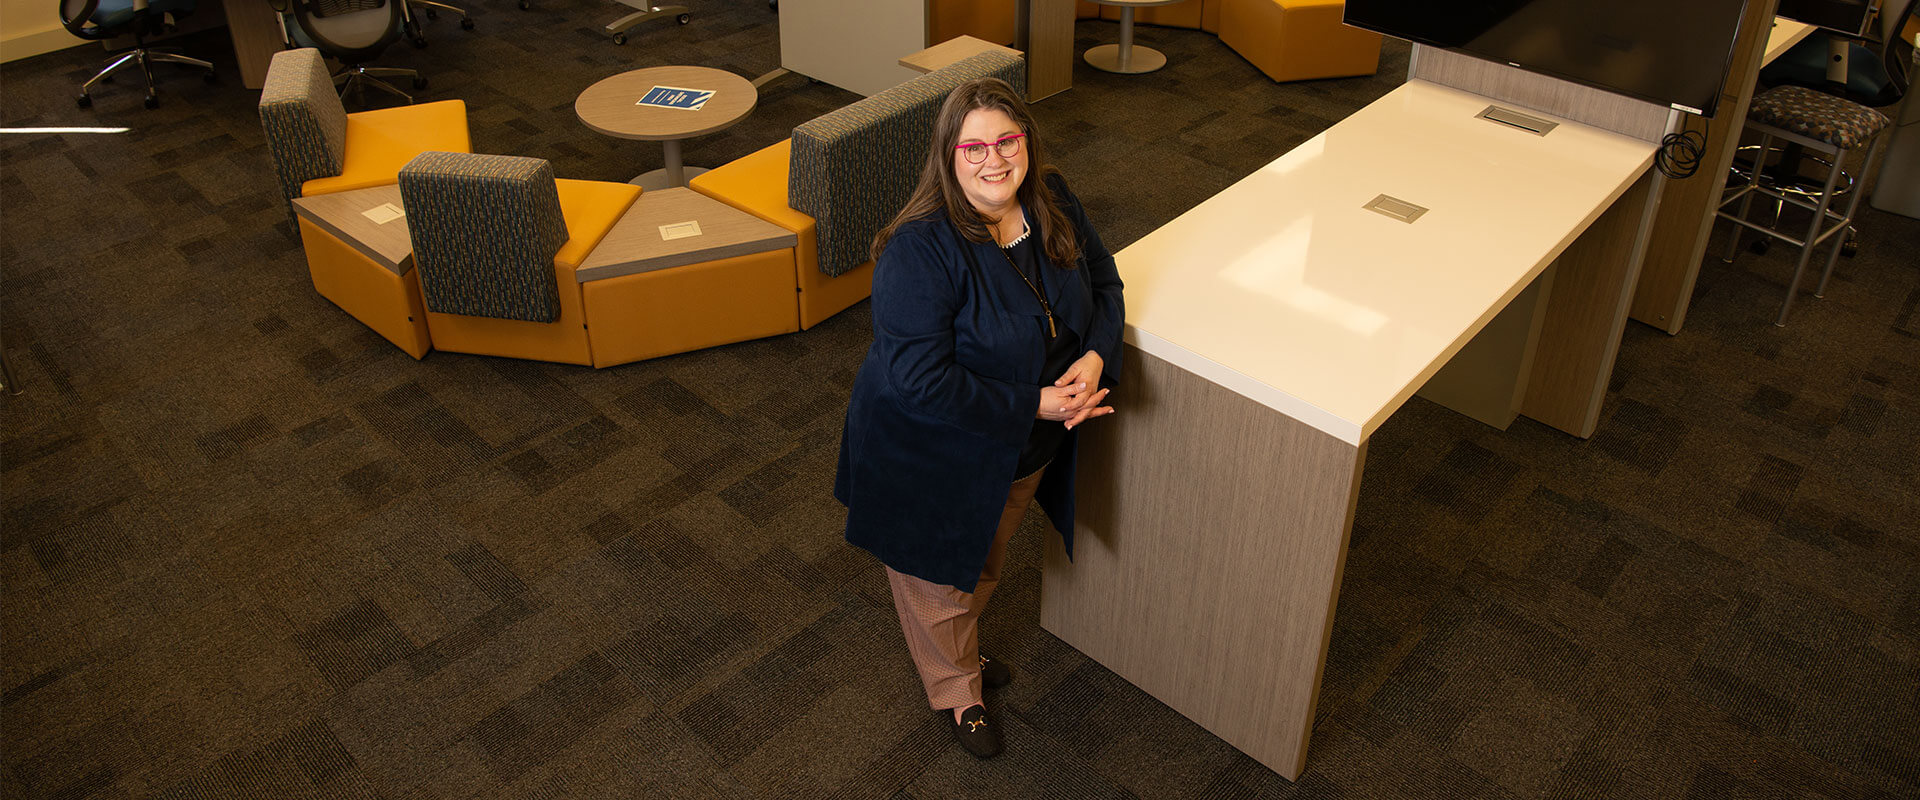 Kathe Lehman-Meyer stands in the Graduate Center for Excellence.